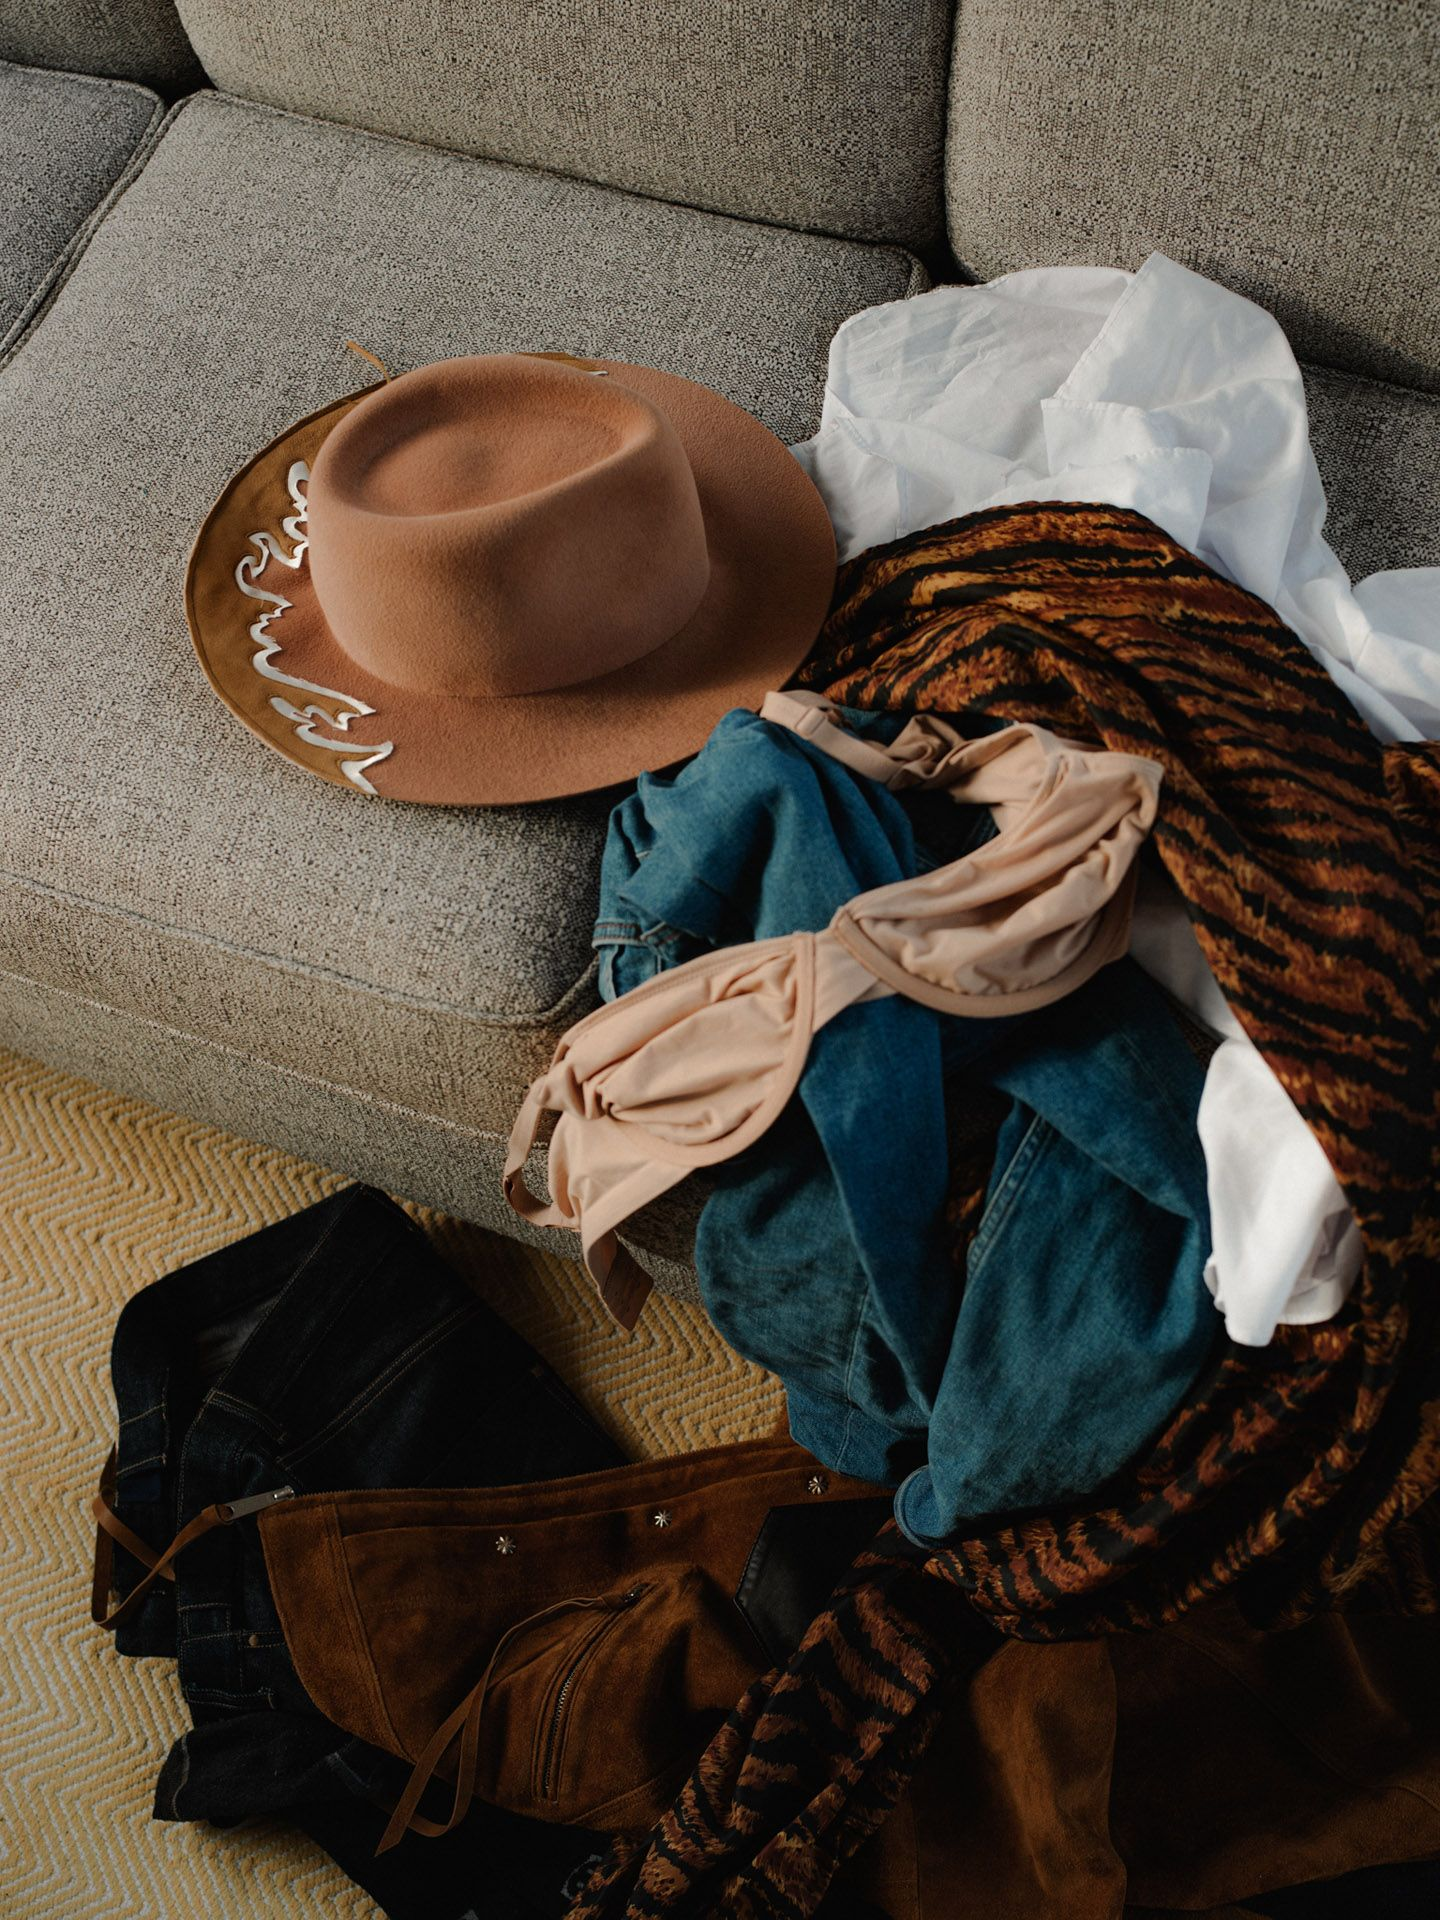 pile of clothes on couch with cowboy hat by Alexi Hobbs in St-Tite for LArose Paris